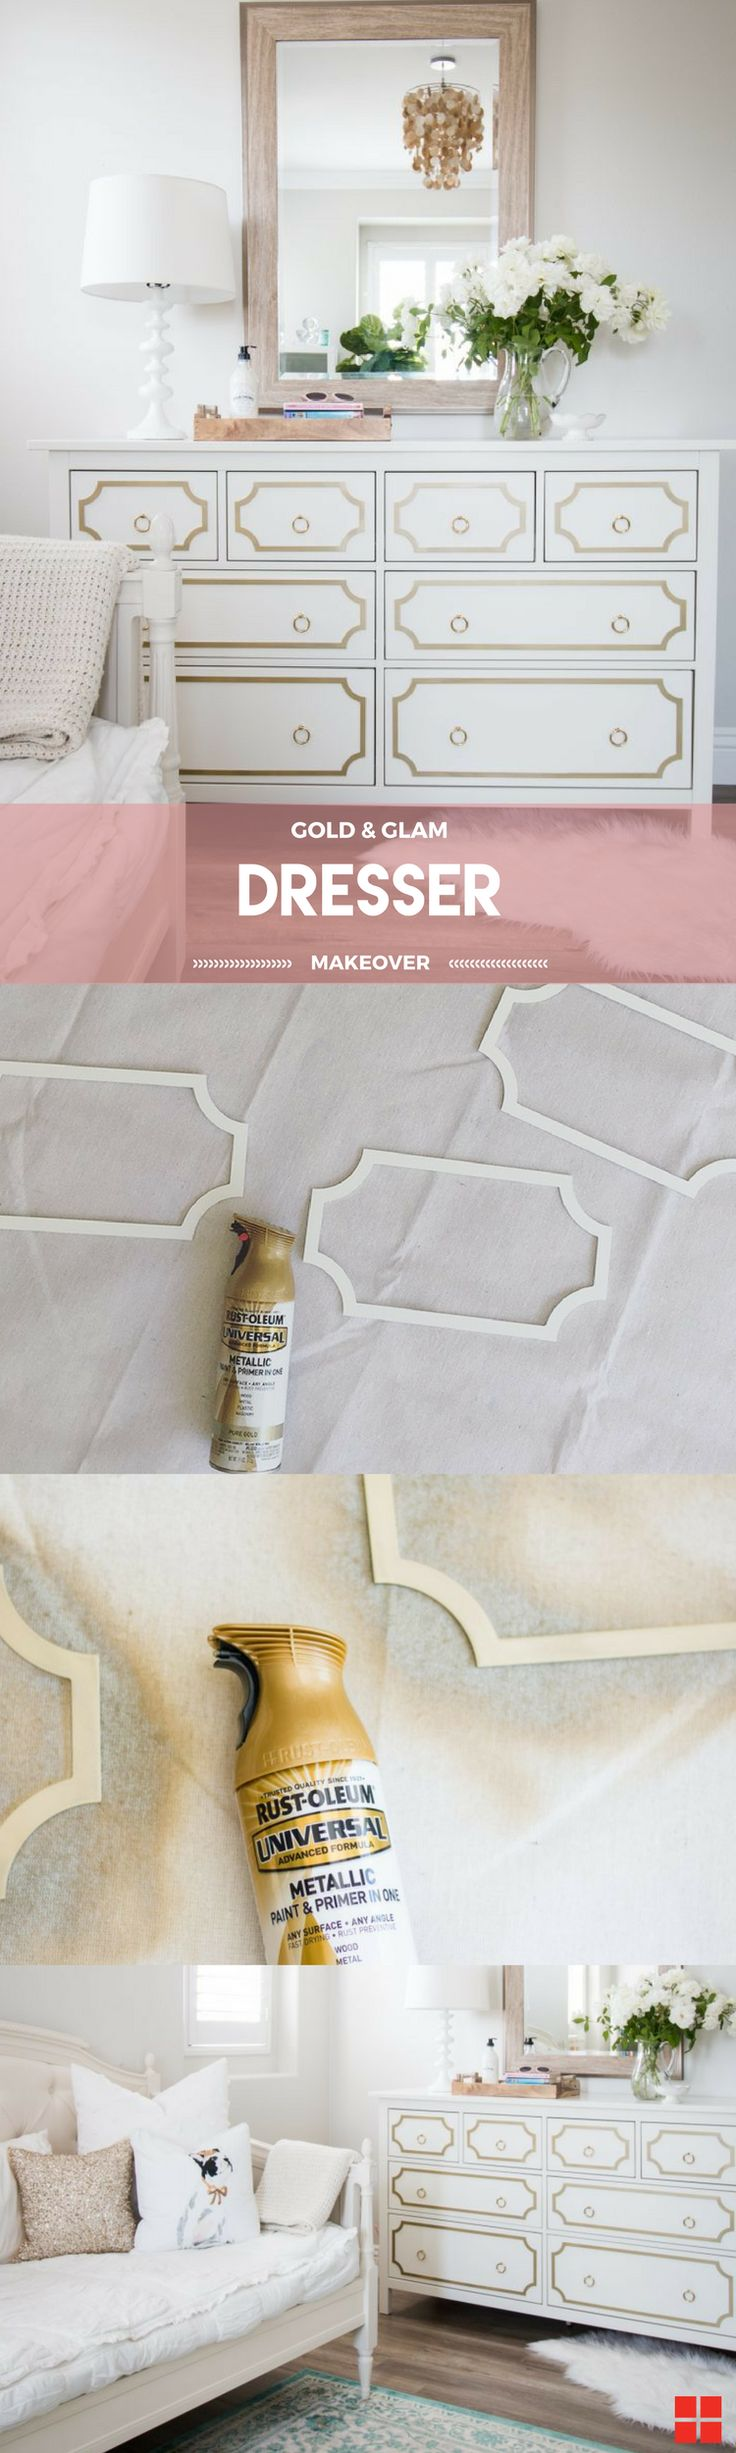 DIY your dresser for the perfect bedroom makeover. This Hemnes Ikea hack is the perfect idea to add glam and organization to your bedroom decor. This refurbished and upcycled dresser is amazing for girls or for teens, and will be an amazing modern styling accent. Thank you to Courtney from 'A Thoughtful Place' for the inspiration, using Rust-Oleum Universal Metallic Spray in Pure Gold. http://spr.ly/6497DJPpR